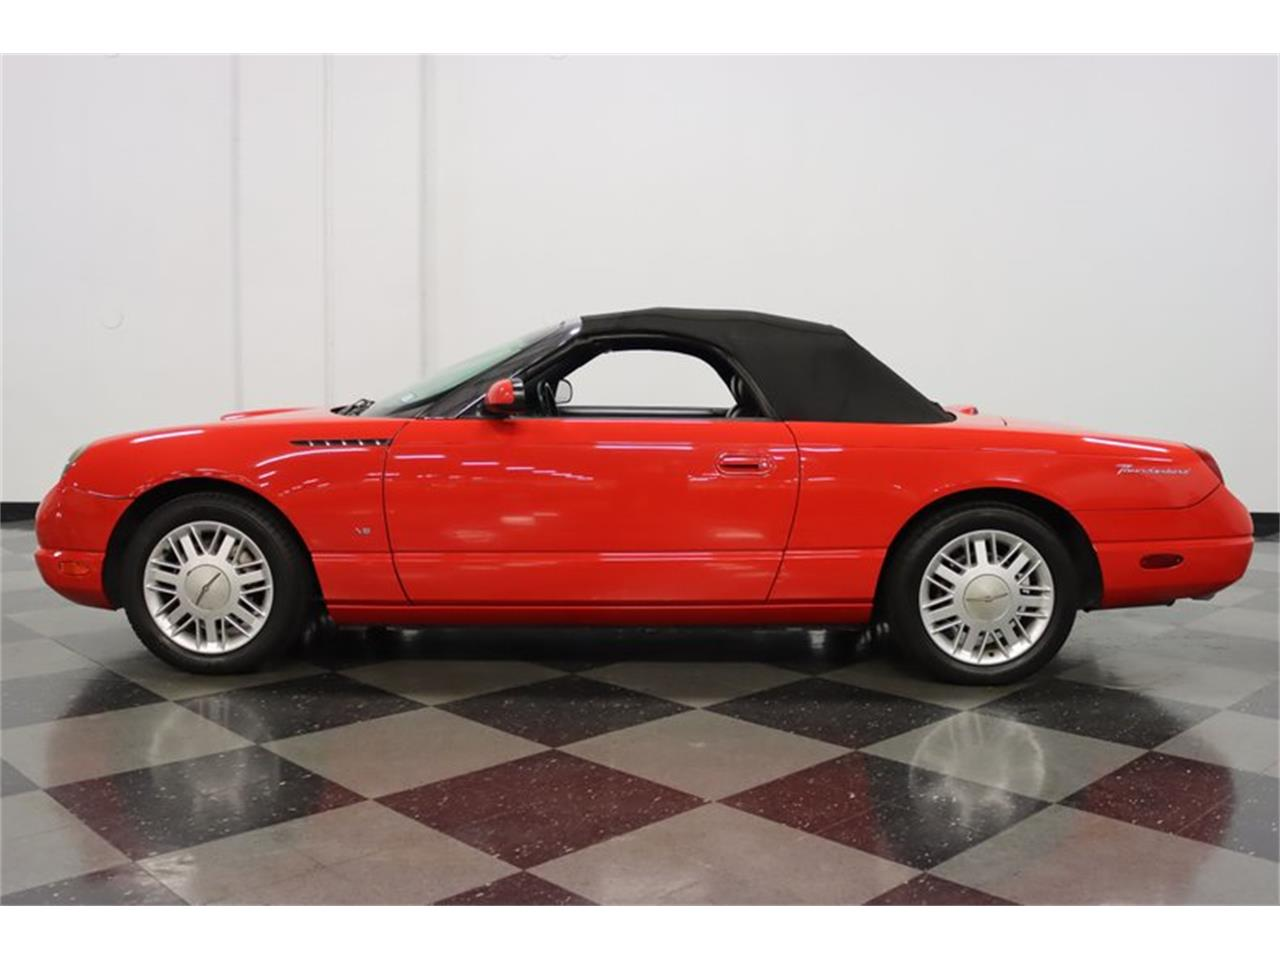 2003 Ford Thunderbird (CC-1414127) for sale in Ft Worth, Texas